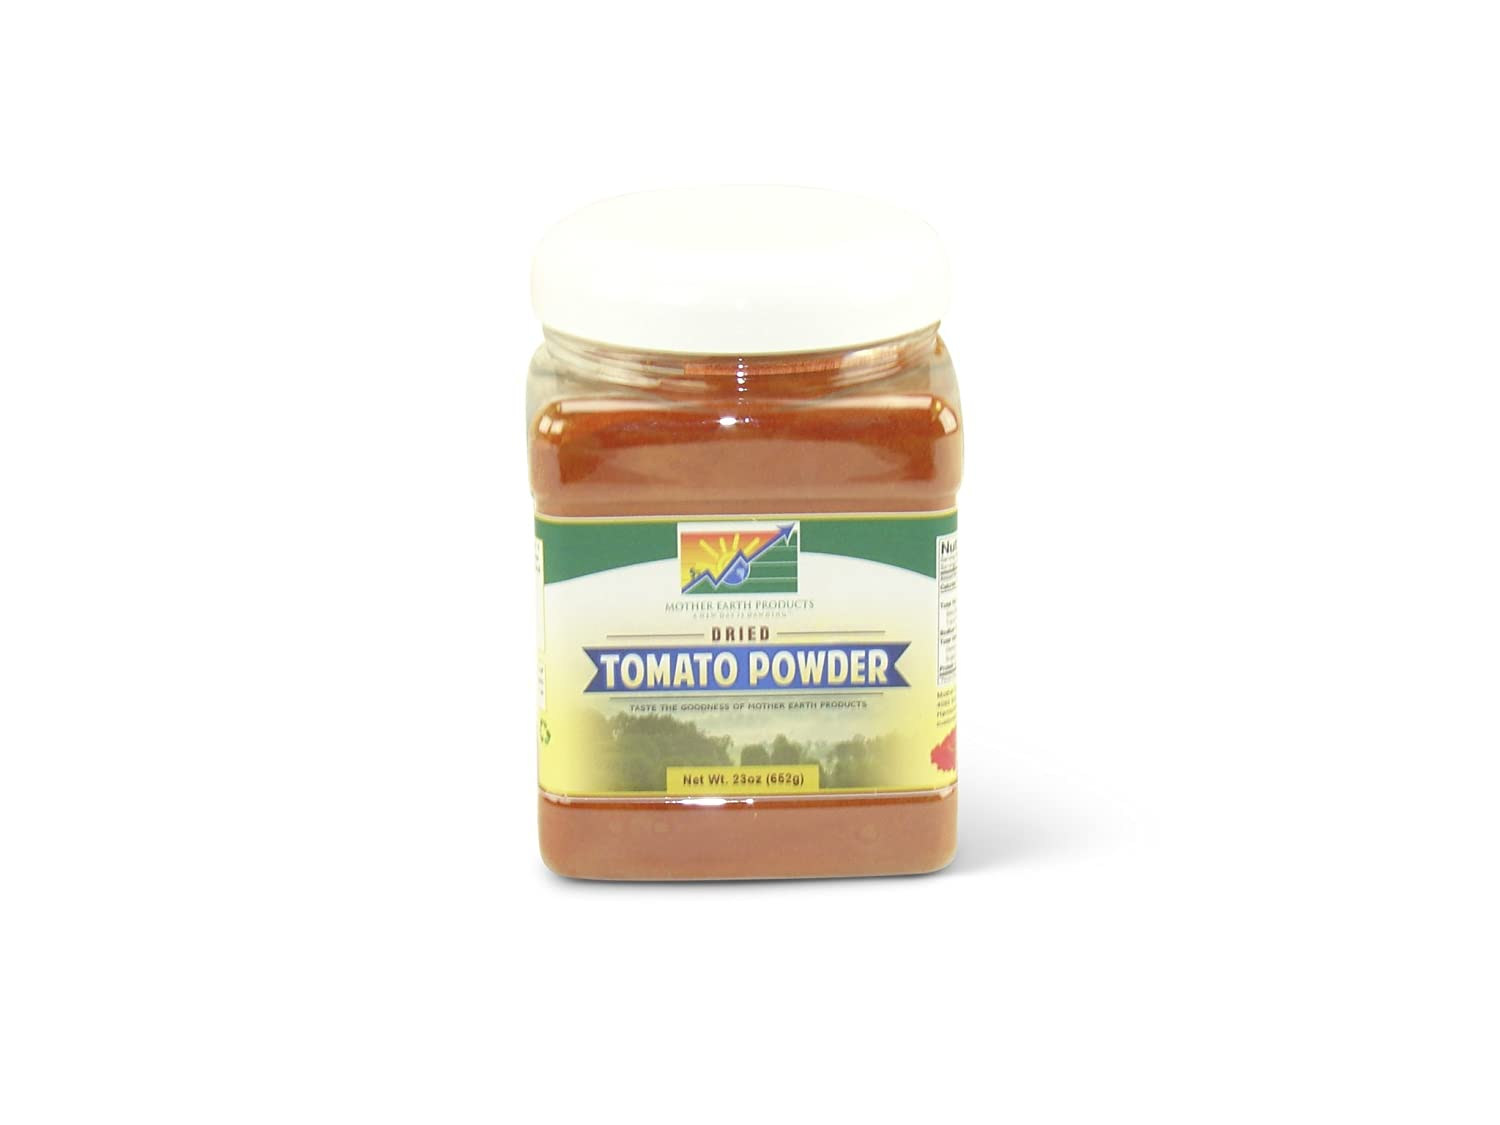 Mother Earth Products Dried Tomato Powder, Quart Jar: Amazon.com ...